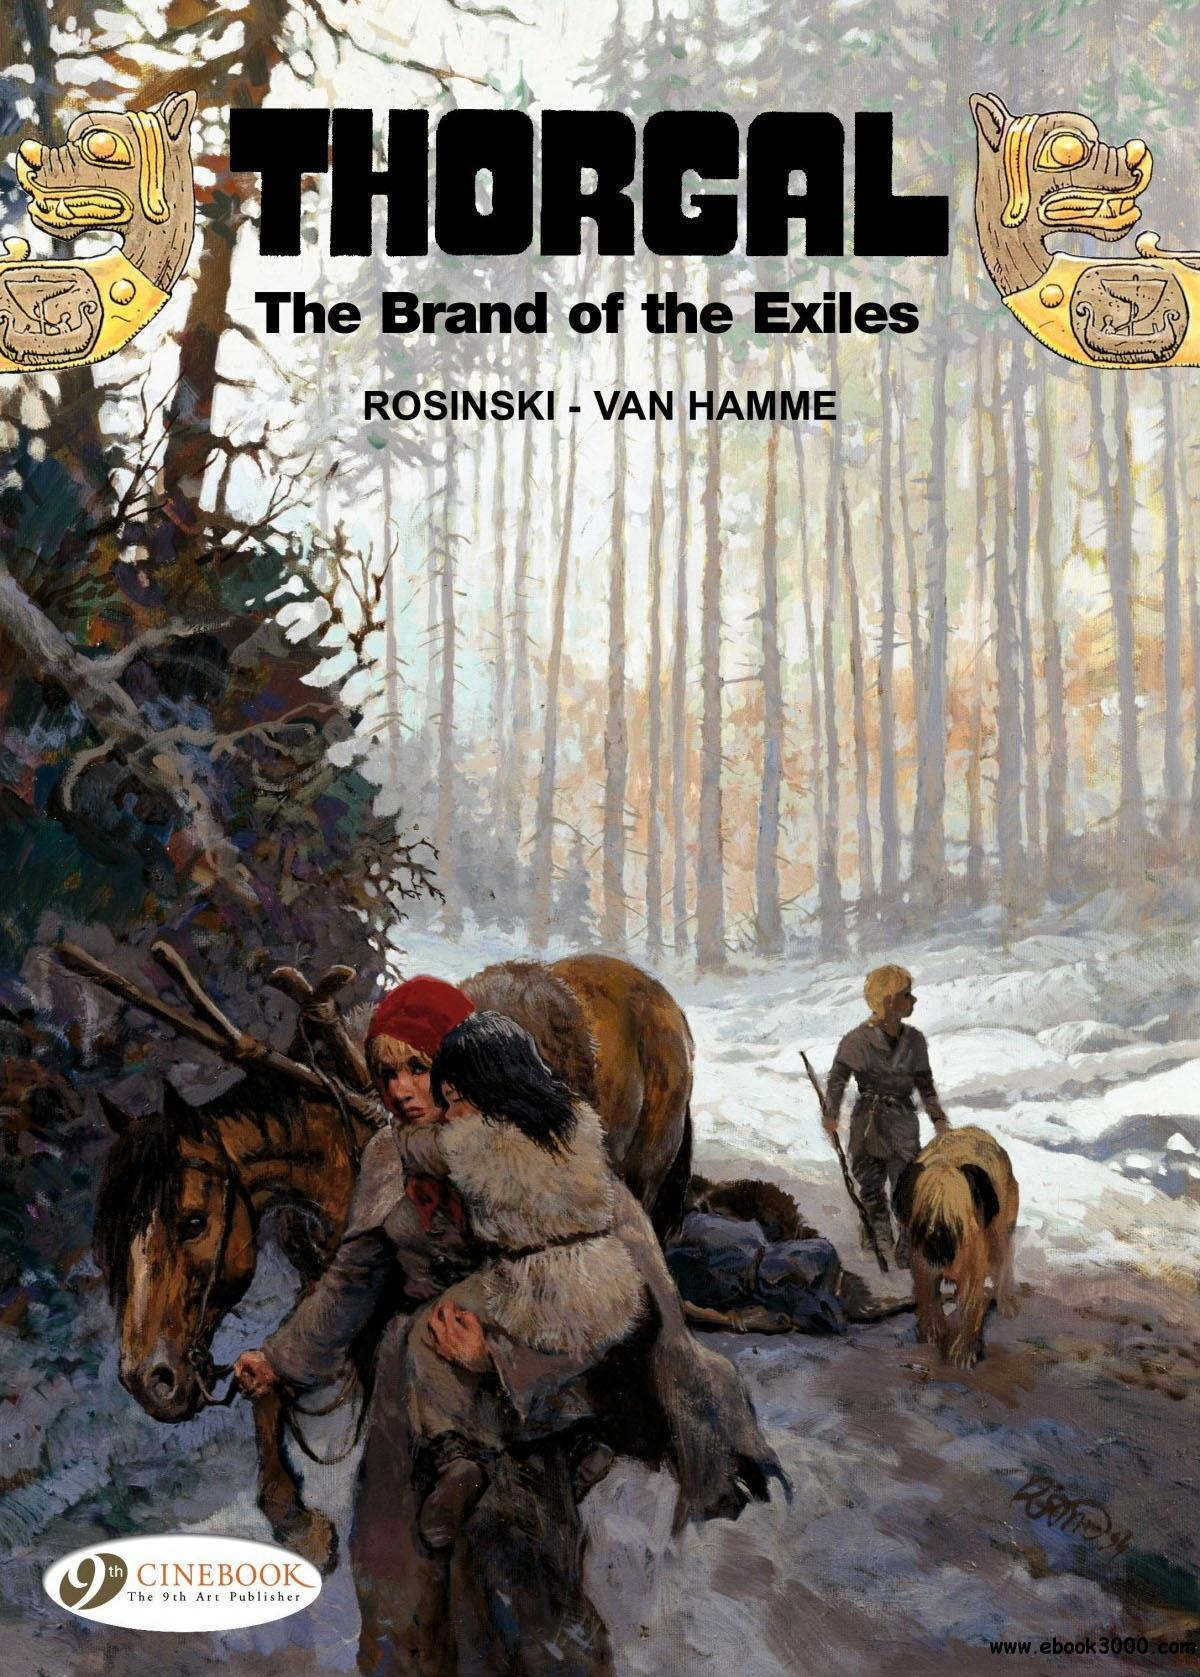 Thorgal 12 - The Brand of the Exiles free download